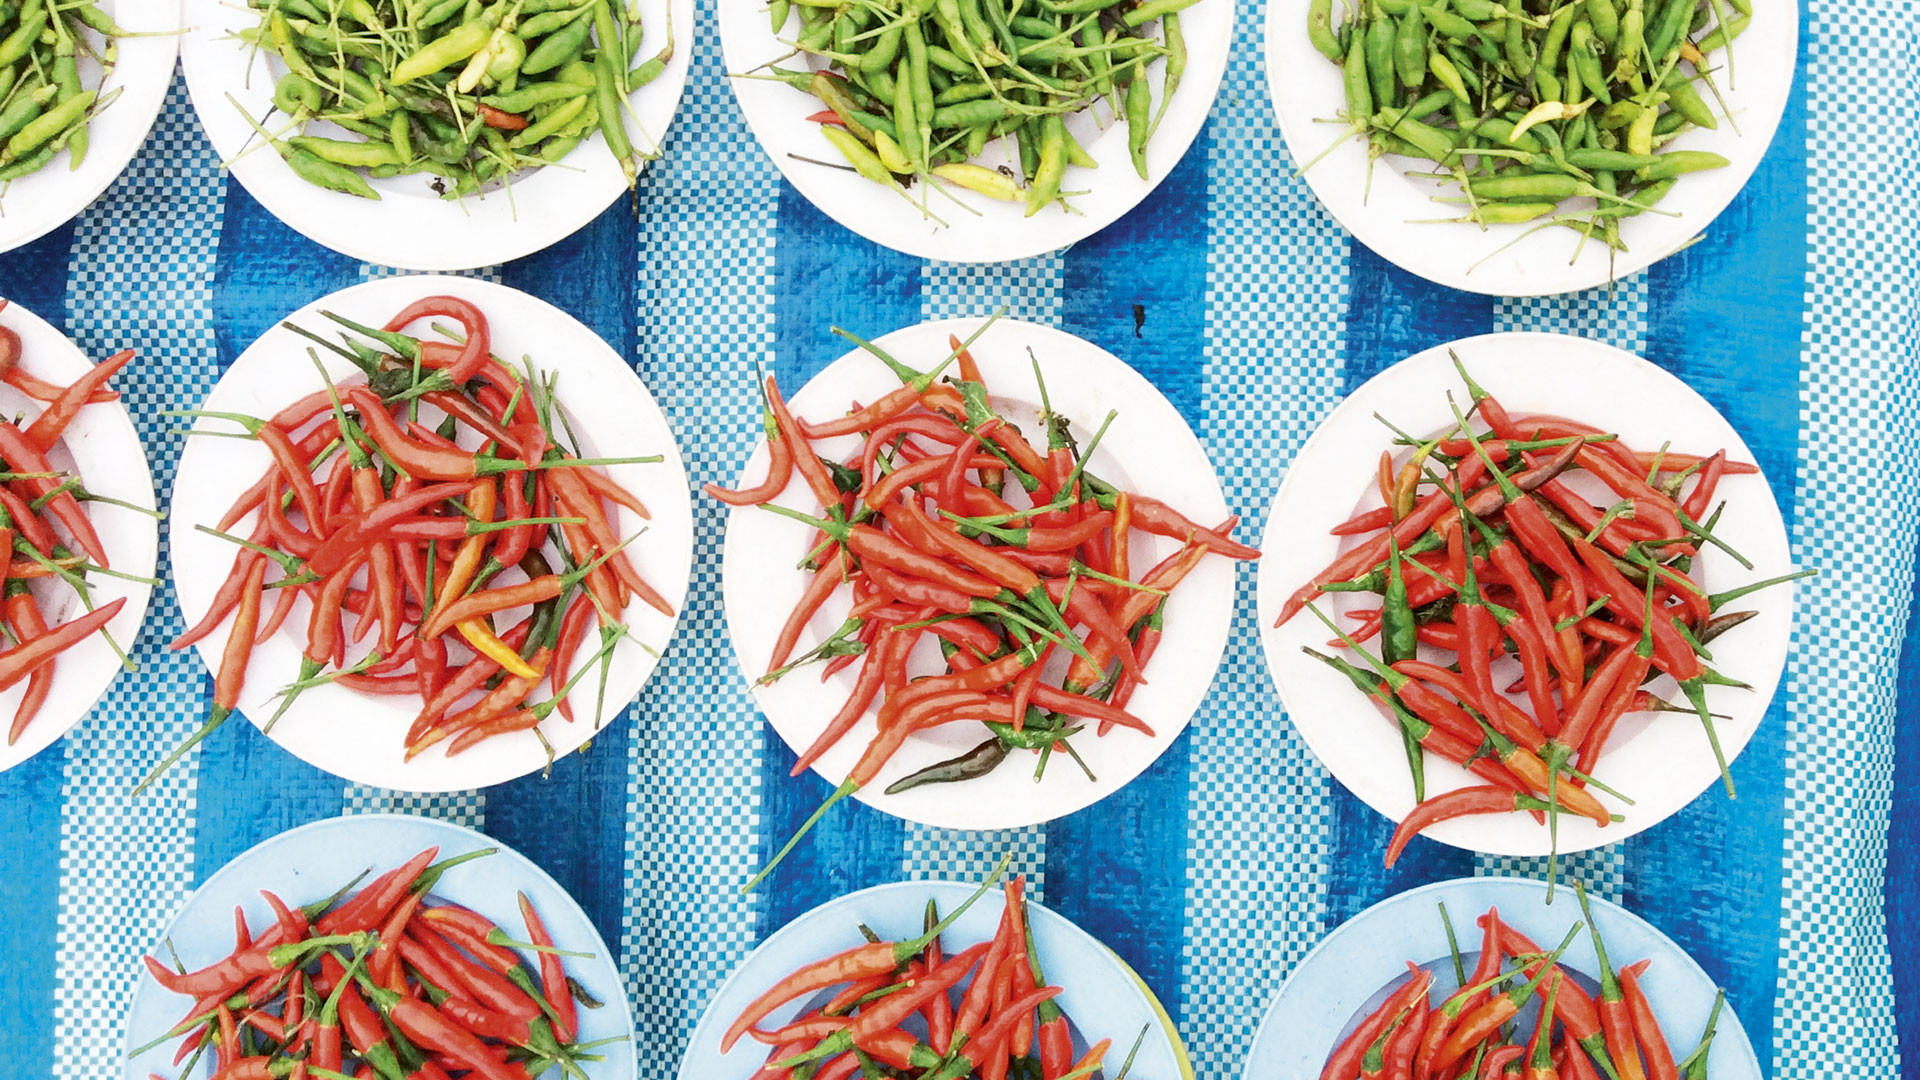 Thailand is renowned for its spicy cuisine